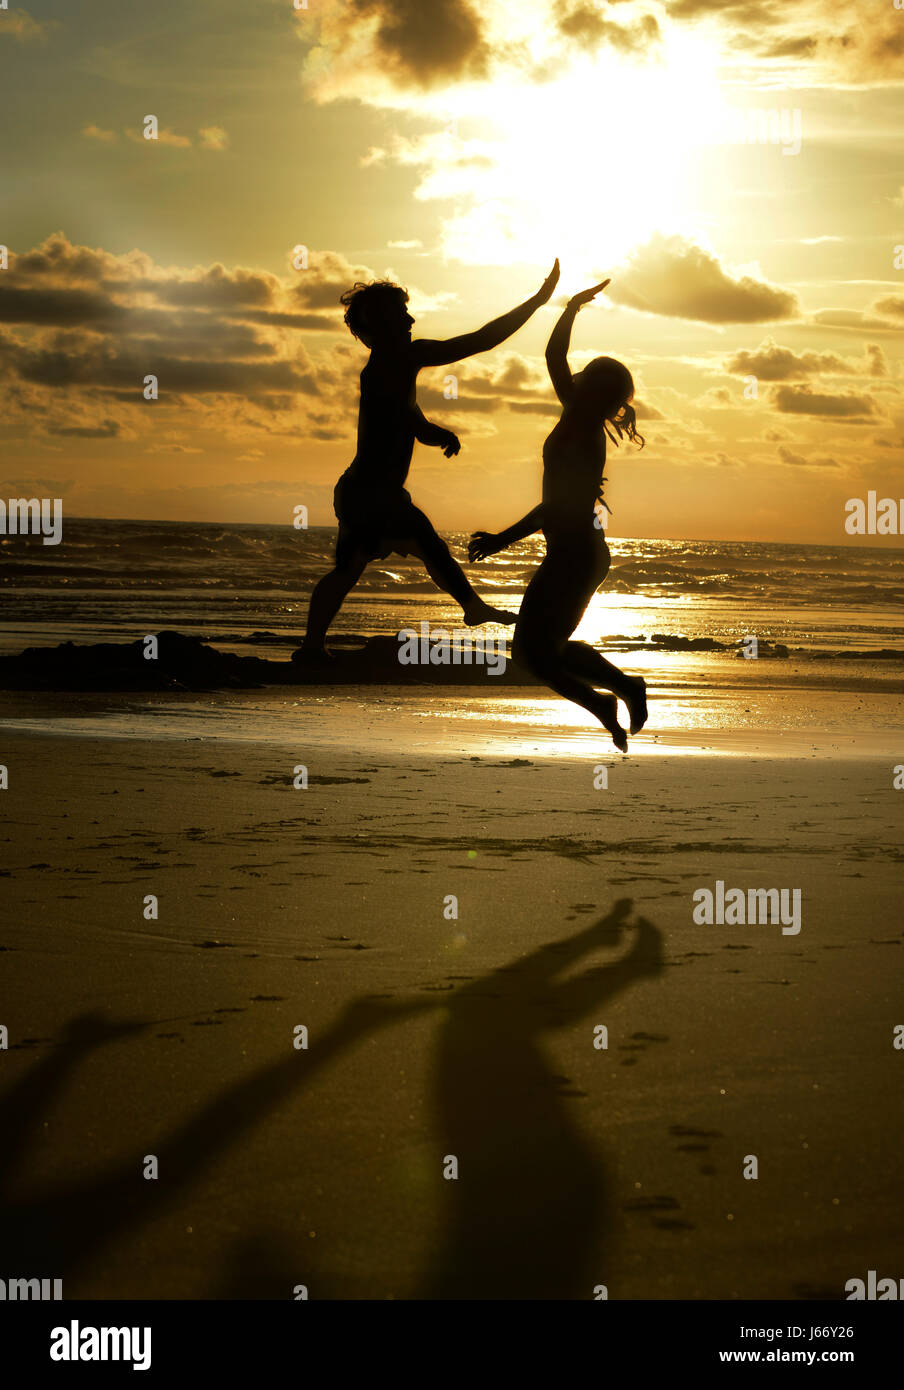 Friends high-five on a beach at sunset. - Stock Image